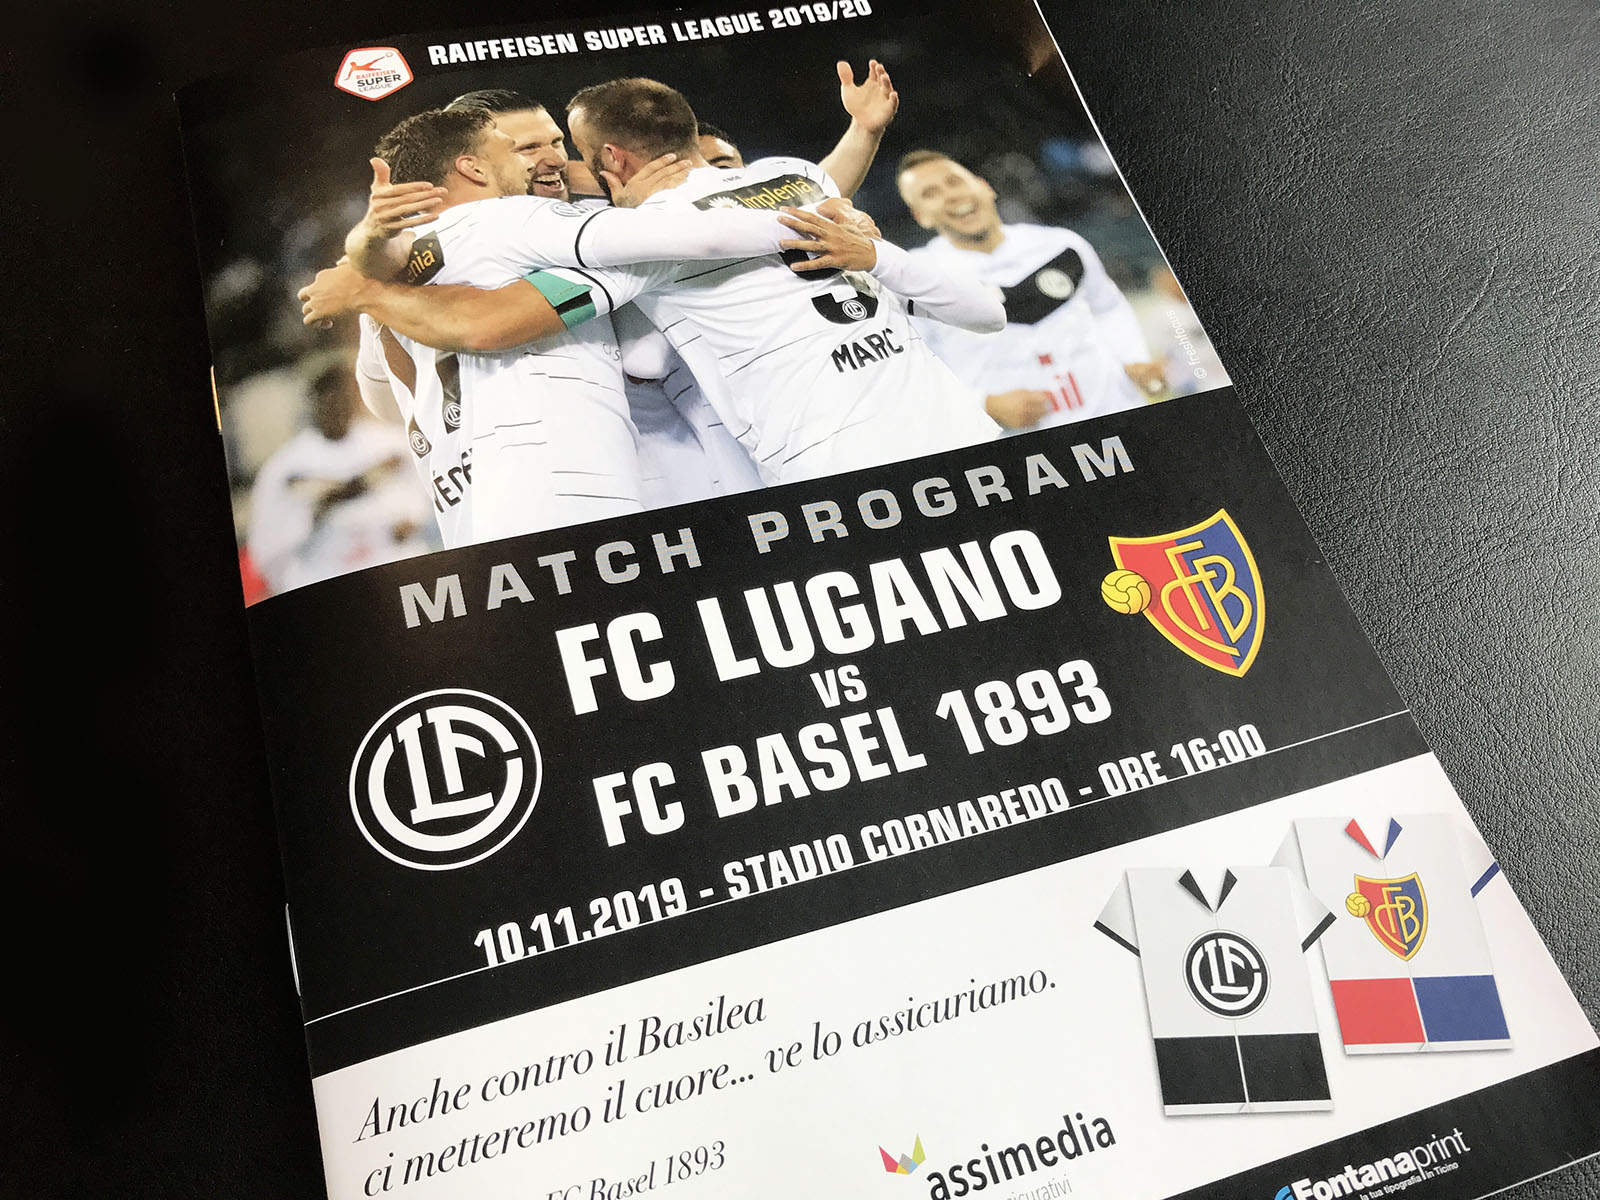 New Media & Design Match Programm FC Lugano